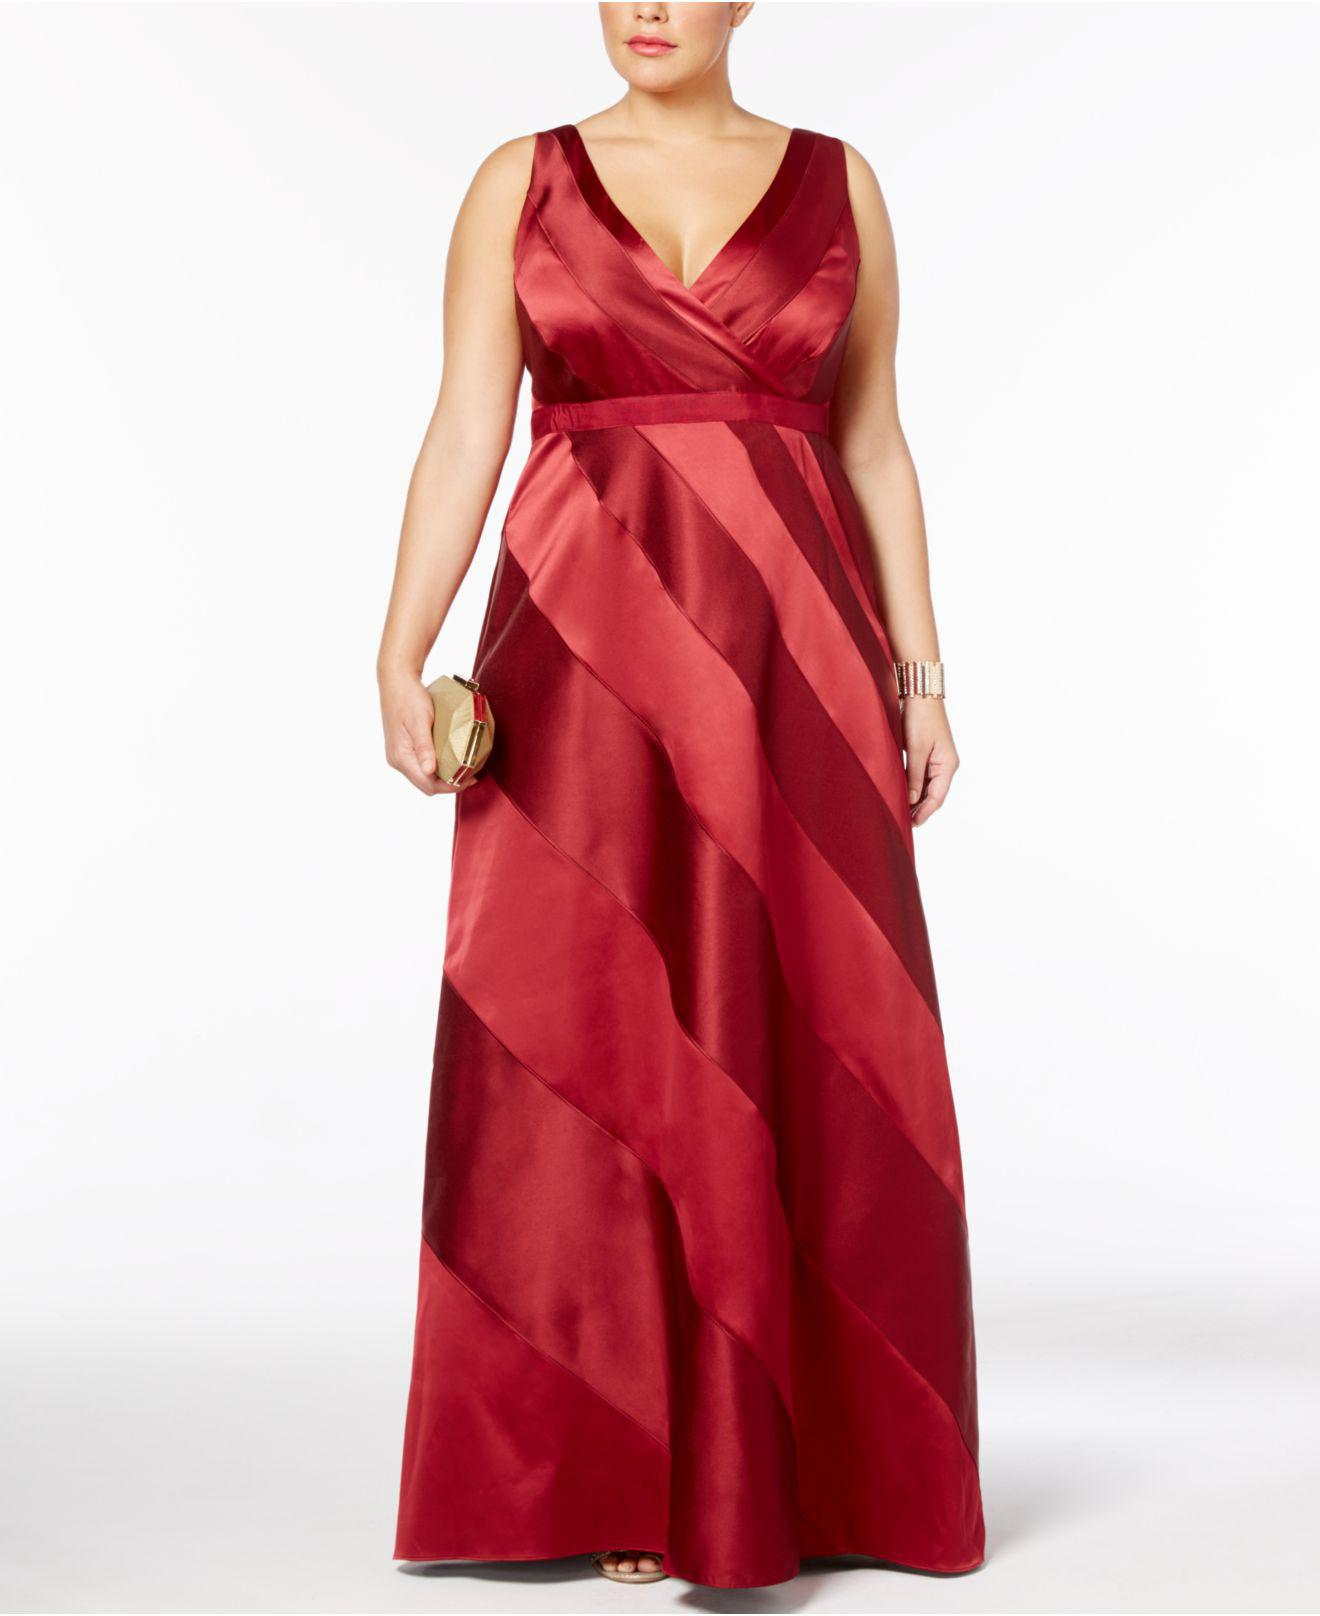 Lyst - Adrianna Papell Plus Size Satin Striped Ball Gown in Red